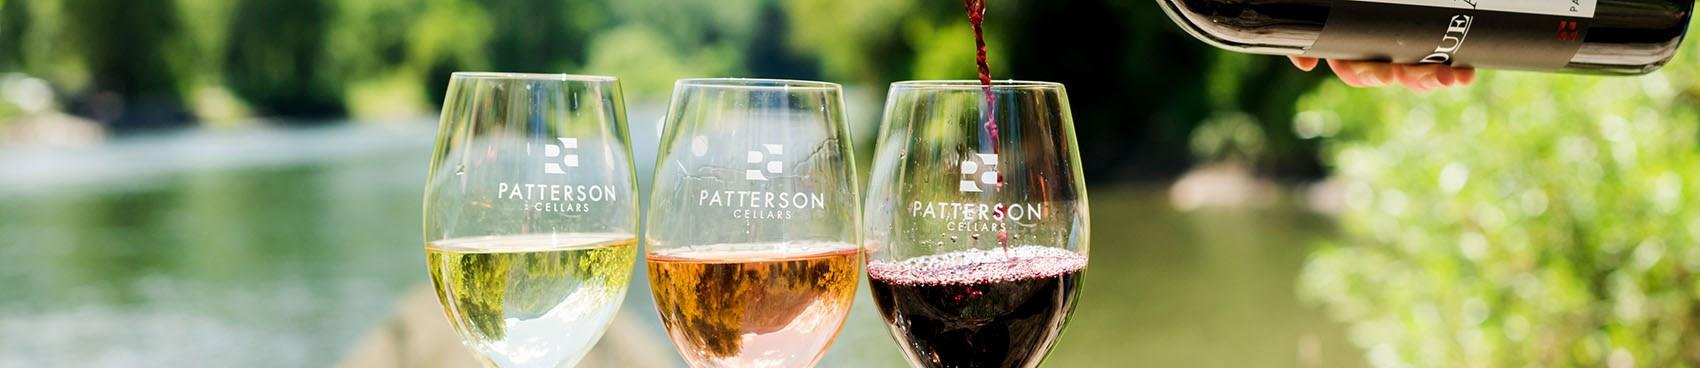 Purchase Tickets to Wine Club Appreciation BBQ - Sunday, August 18 at Patterson Cellars on CellarPass